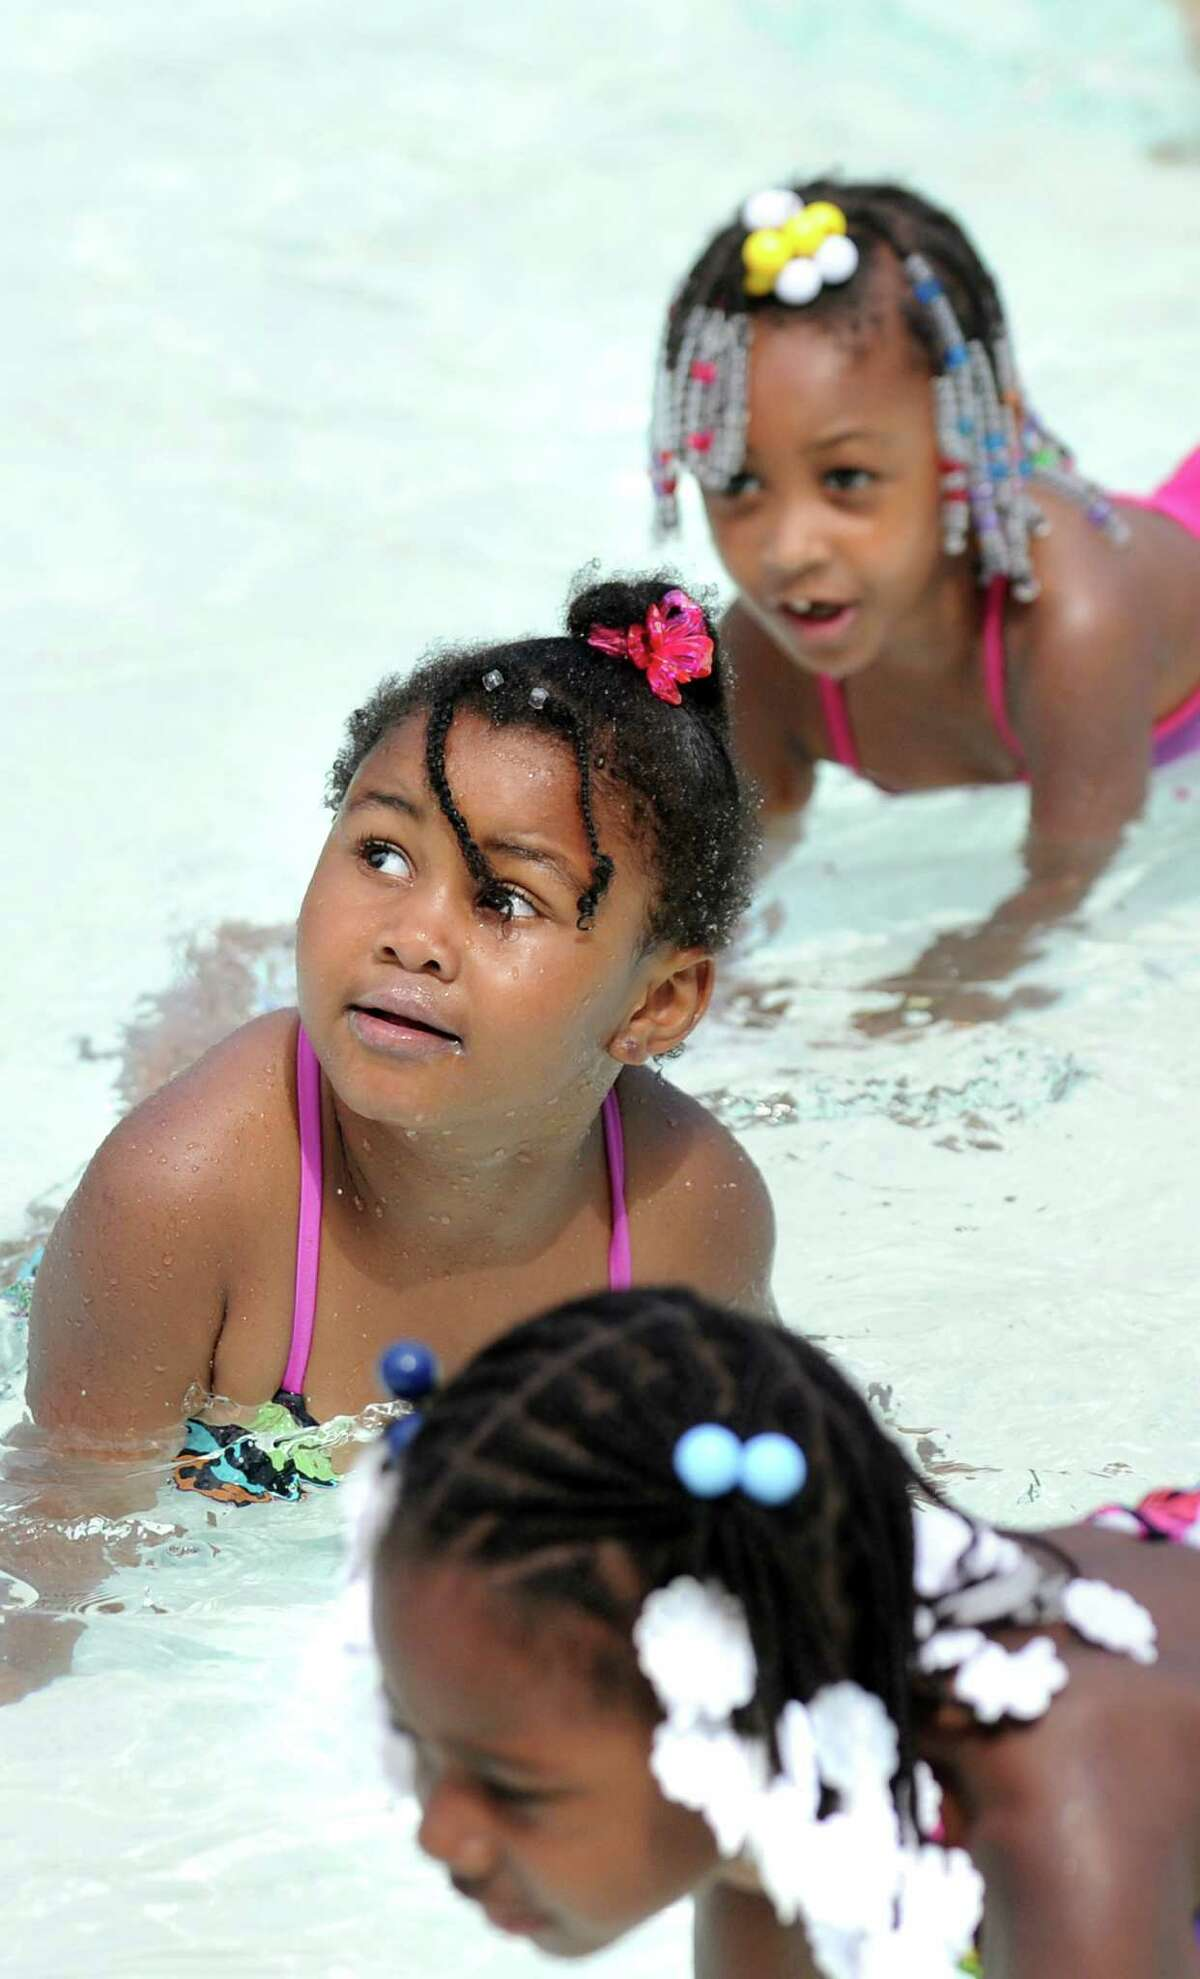 Children from kindergarten to sixth grade take part in a Learn-to-Swim lesson on Wednesday, July 9, 2014, at Lincoln Park Pool in Albany, N.Y. The free, 10-program is put on by the City of Albany and the American Red Cross and sponsored by Tri City Rentals. (Cindy Schultz / Times Union)